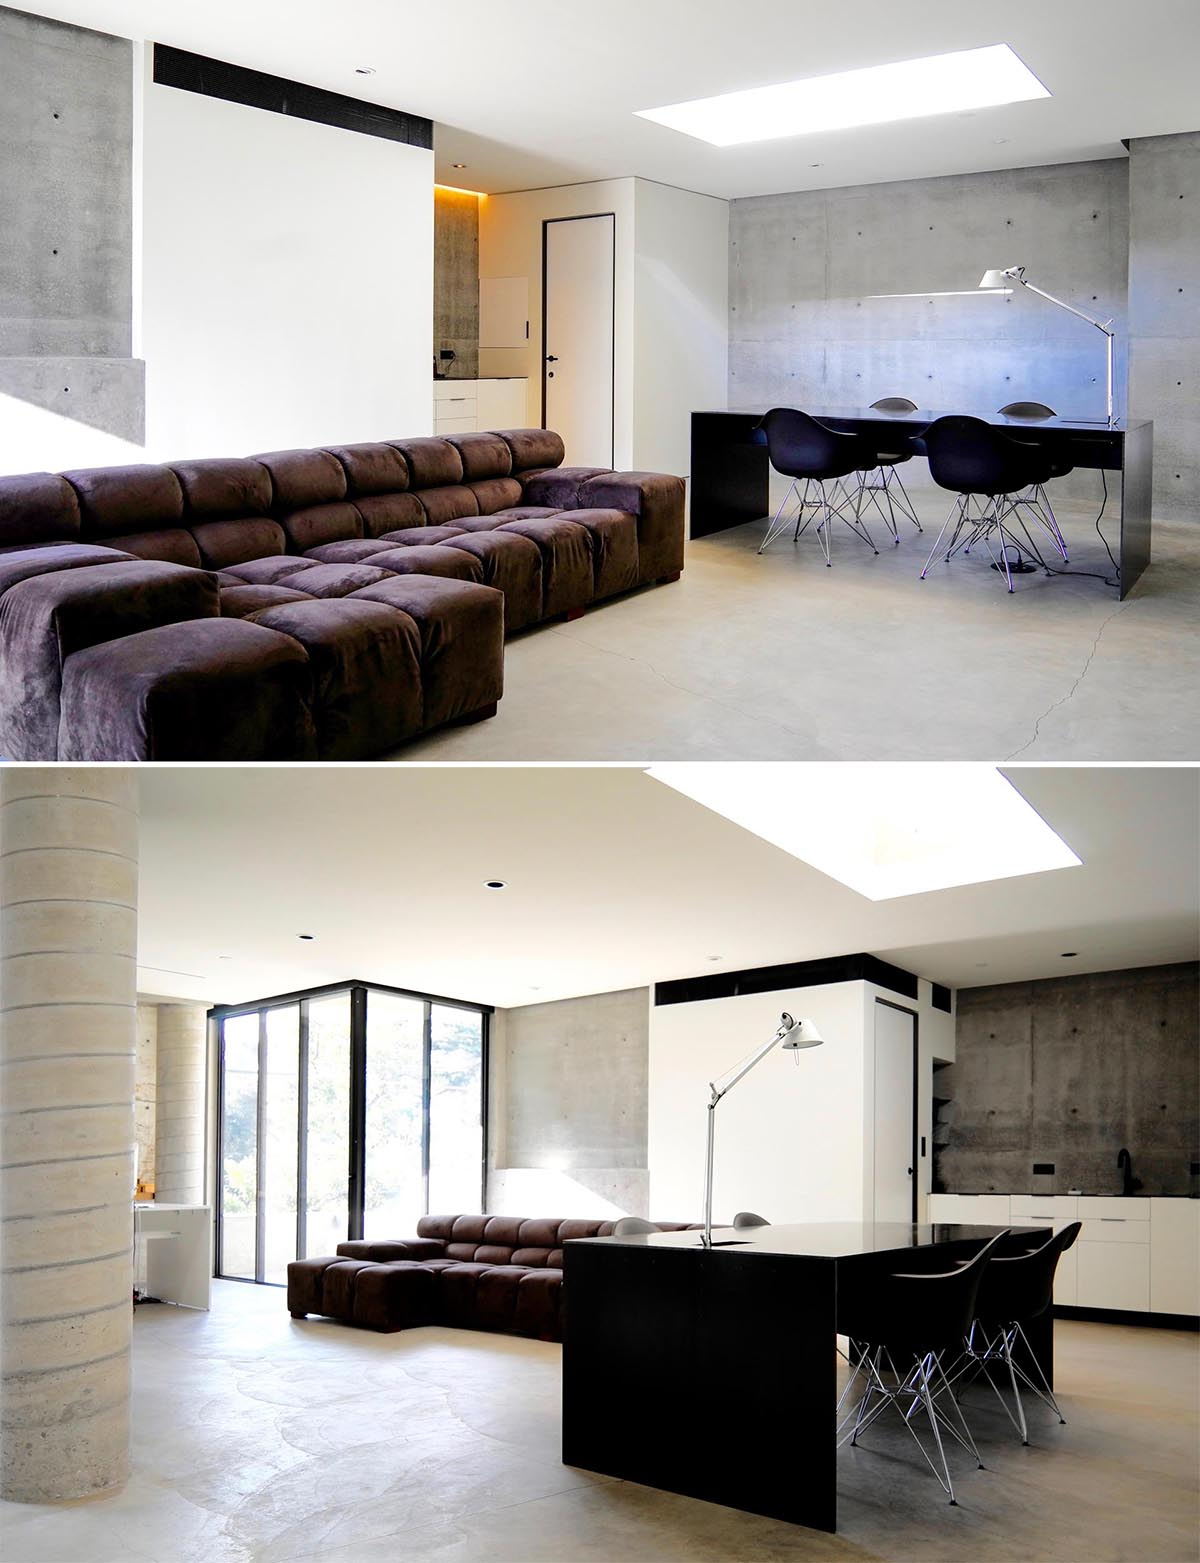 An underground home office with concrete floors and a skylight.